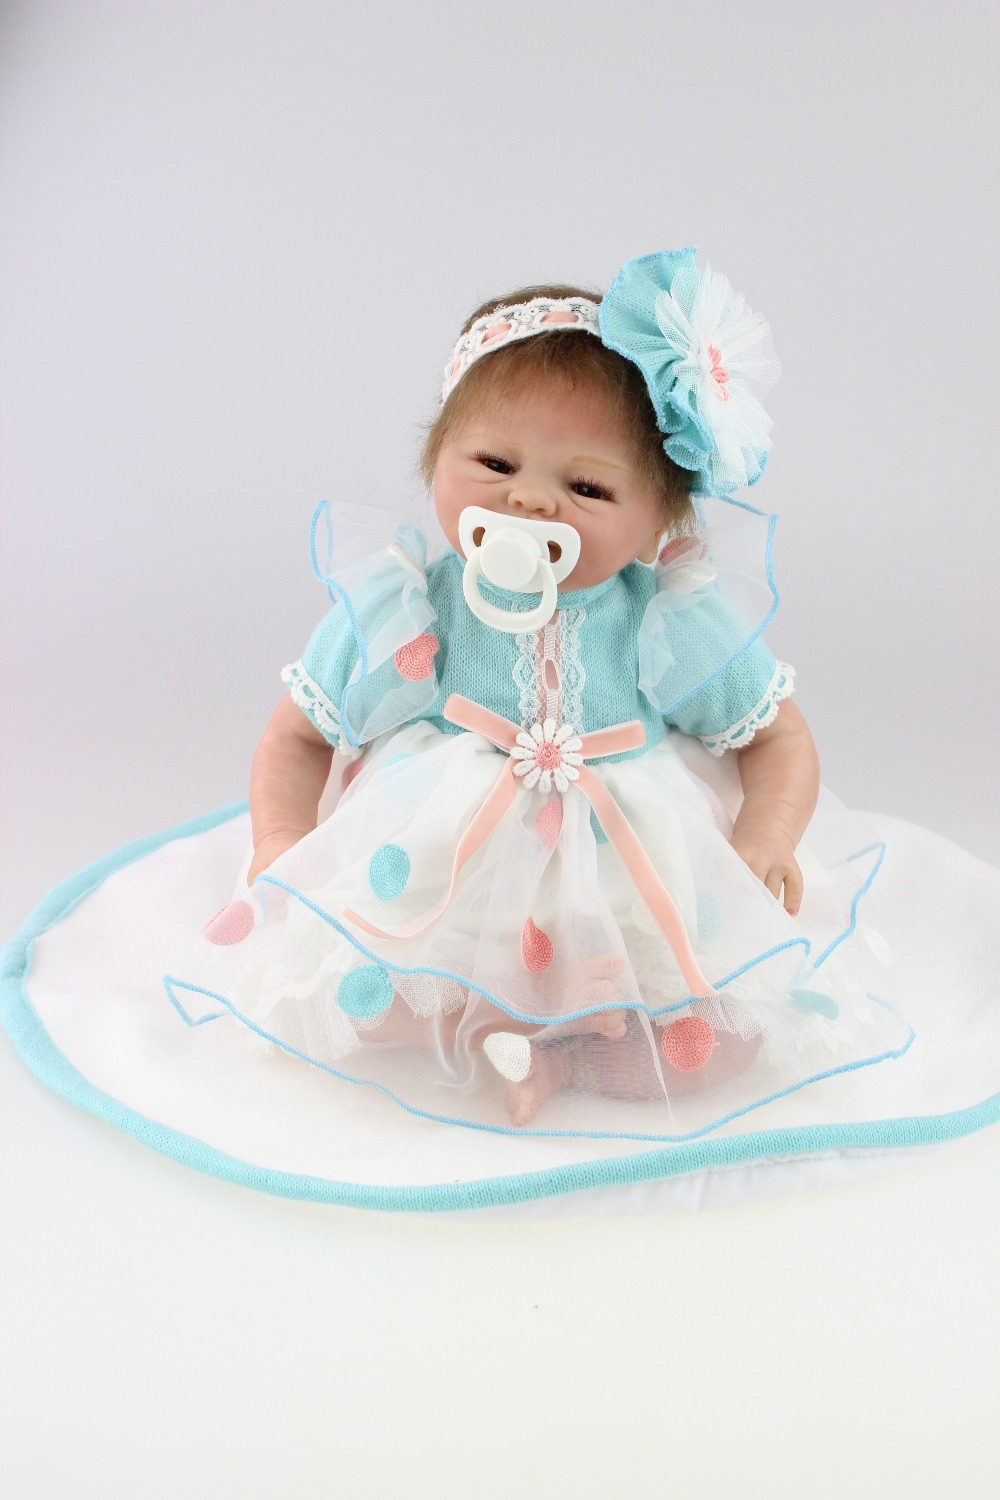 NPKCOLLECTION More Real Gentle Touch Reborn Doll Baby Girl Gift 16 Realistic Silicone Newborn Babies 29inch silicone reborn babies realistic newborn baby doll lifesize doll baby real baby girl toys christmas gift page 1